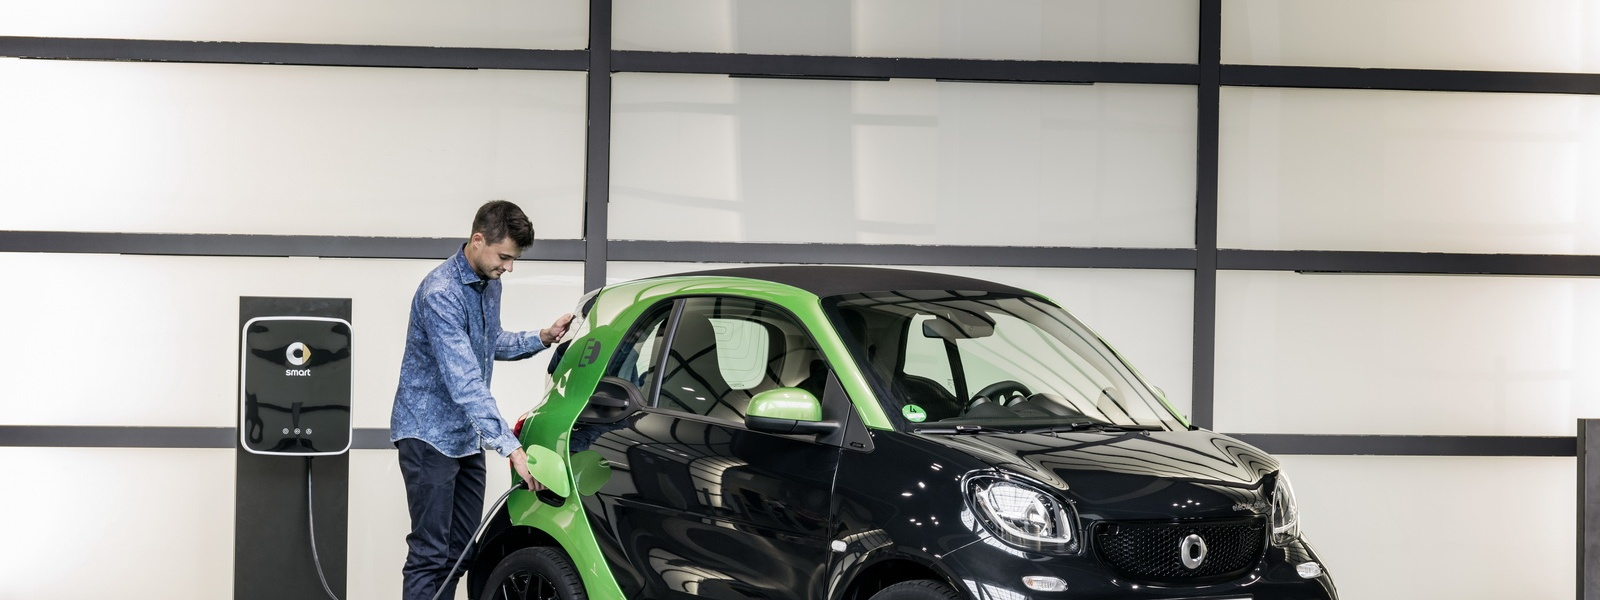 smart-fortwo-electric-drive-1.jpg